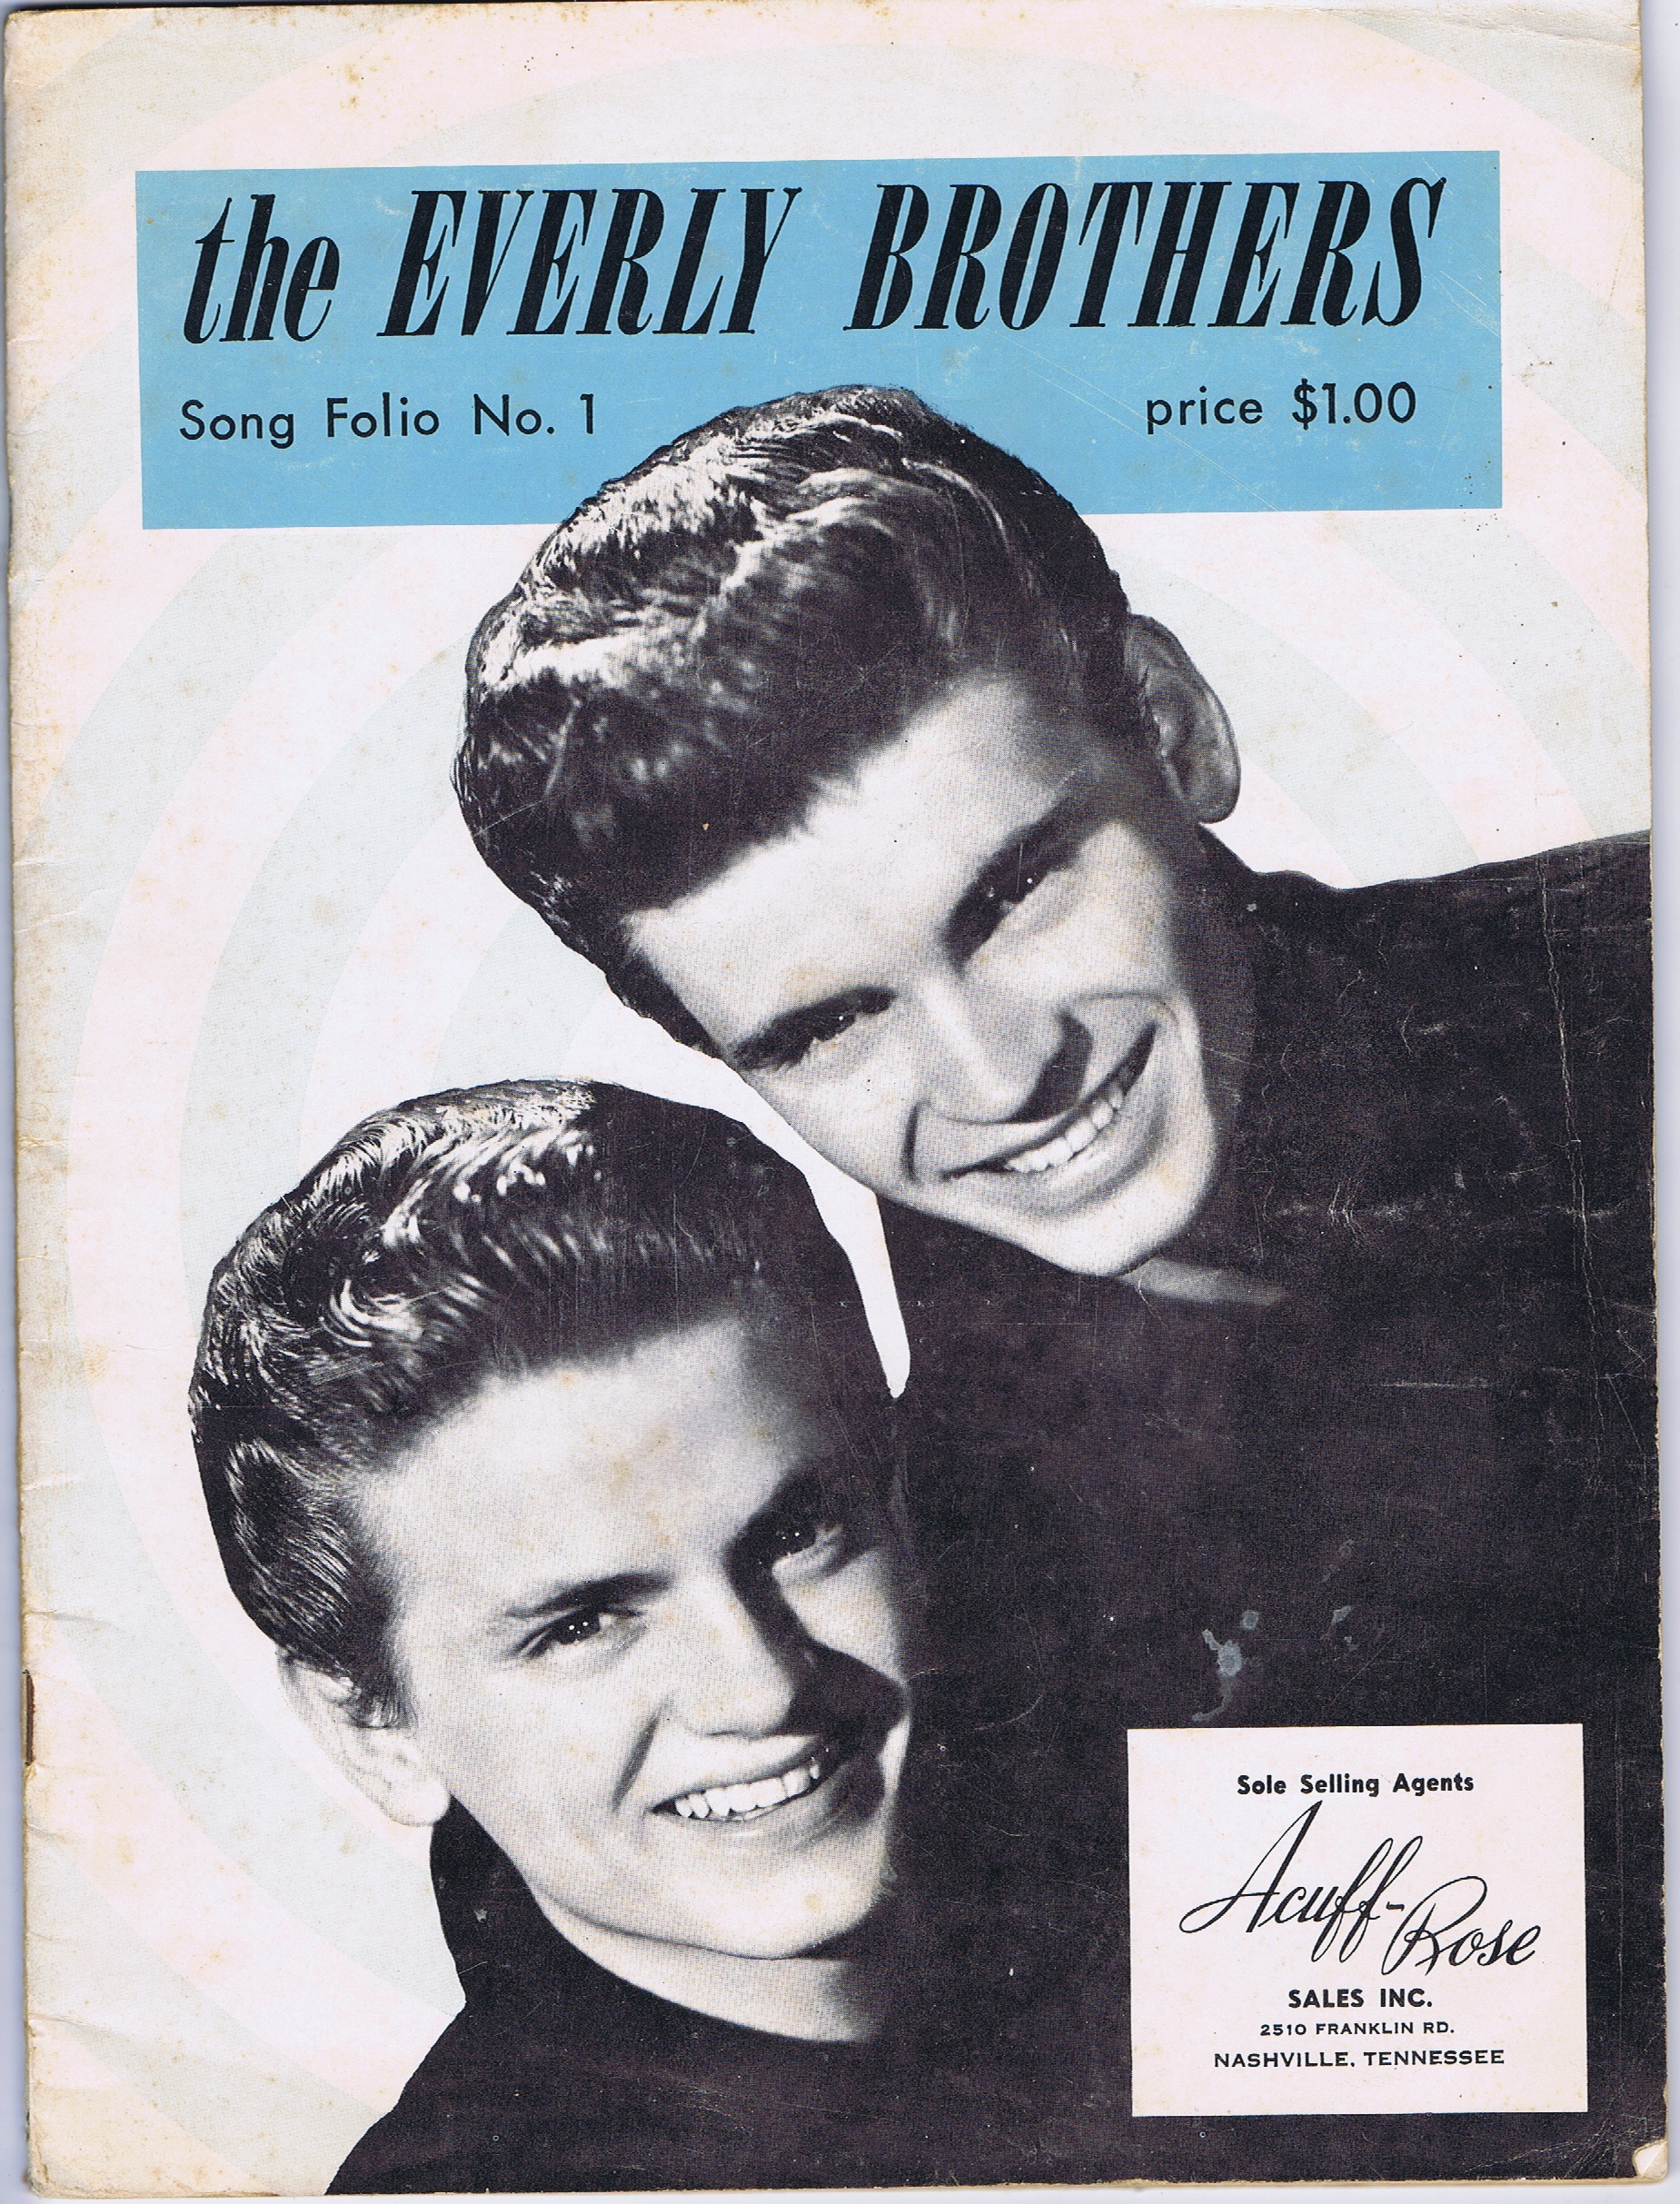 J211THE EVERLY BROTHER'S SONG FOLIO NO. 1 - ACUFF ROSE